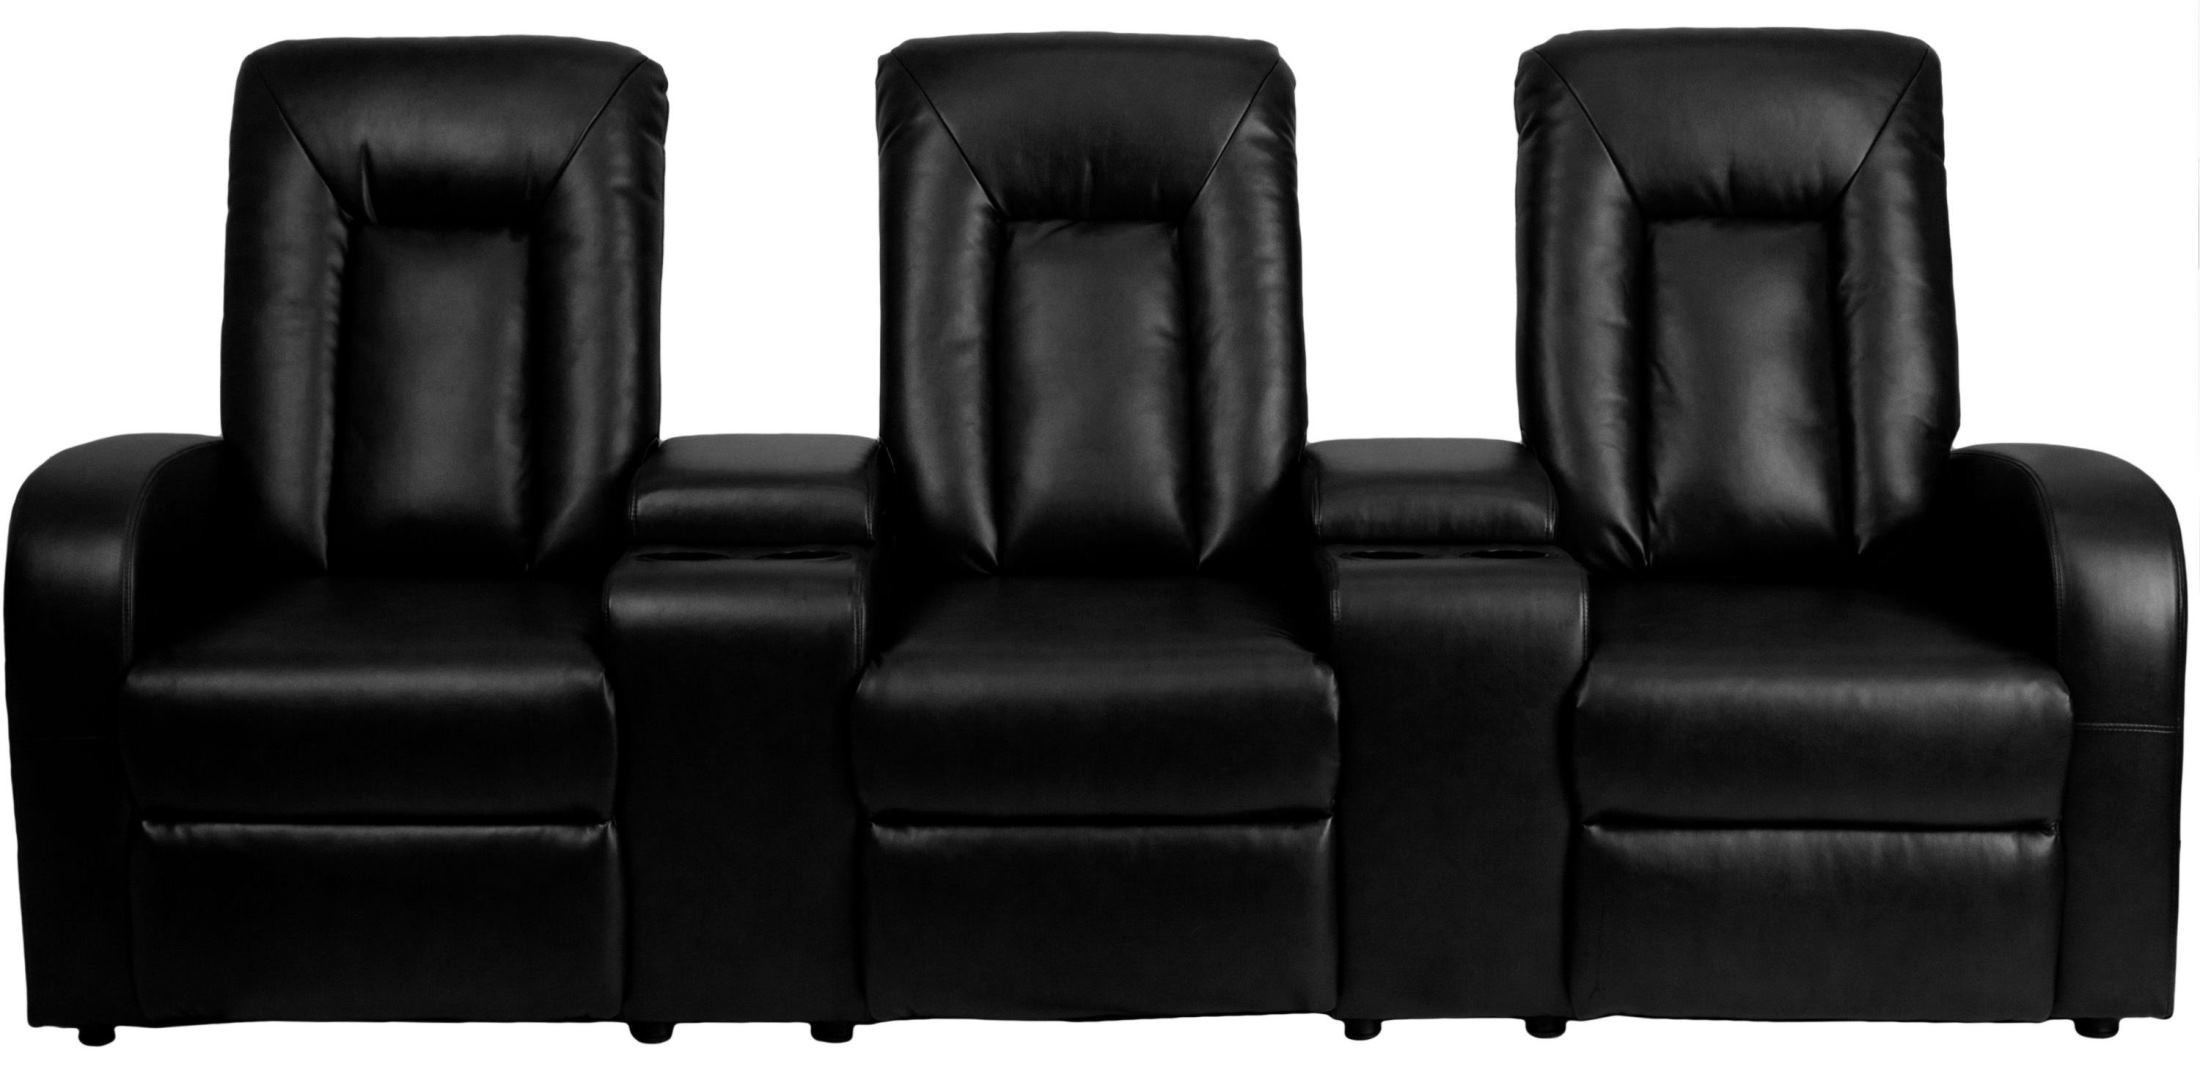 Black Leather 3 Seat Home Theater Console Recliner From Renegade BT 70259 3